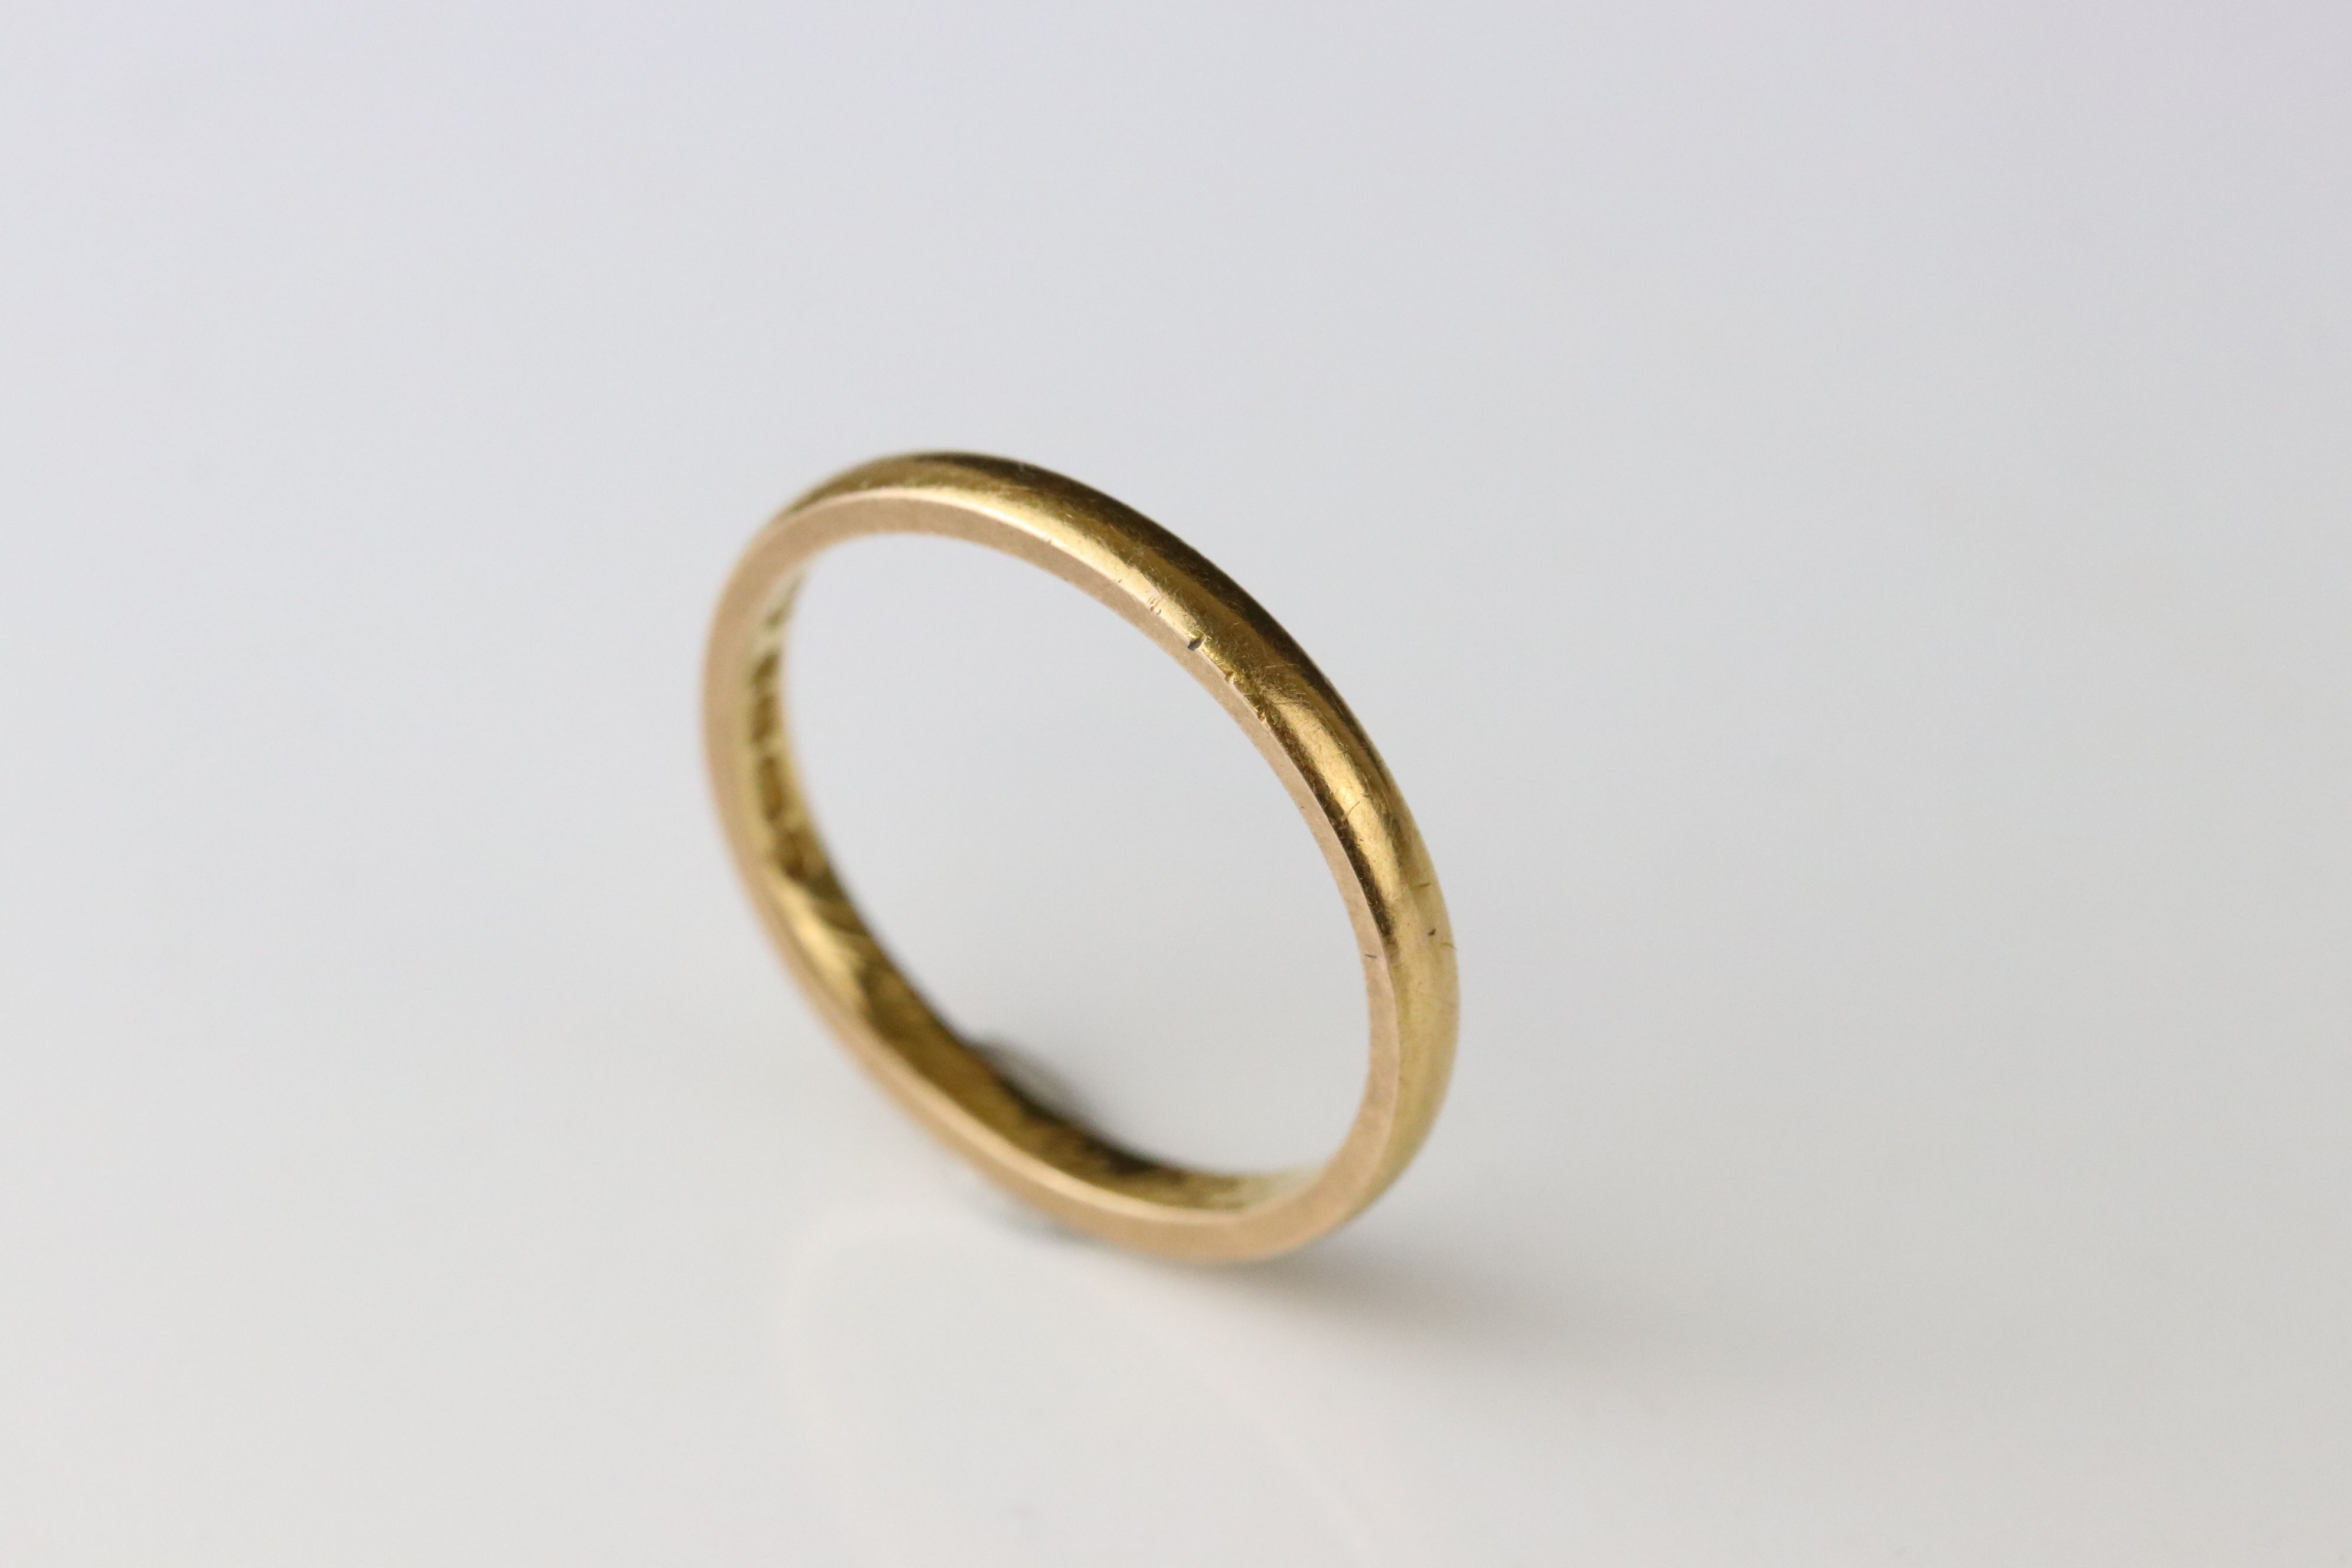 22ct yellow gold wedding band, personalisation to inner shank, width approx 2mm, ring size Q